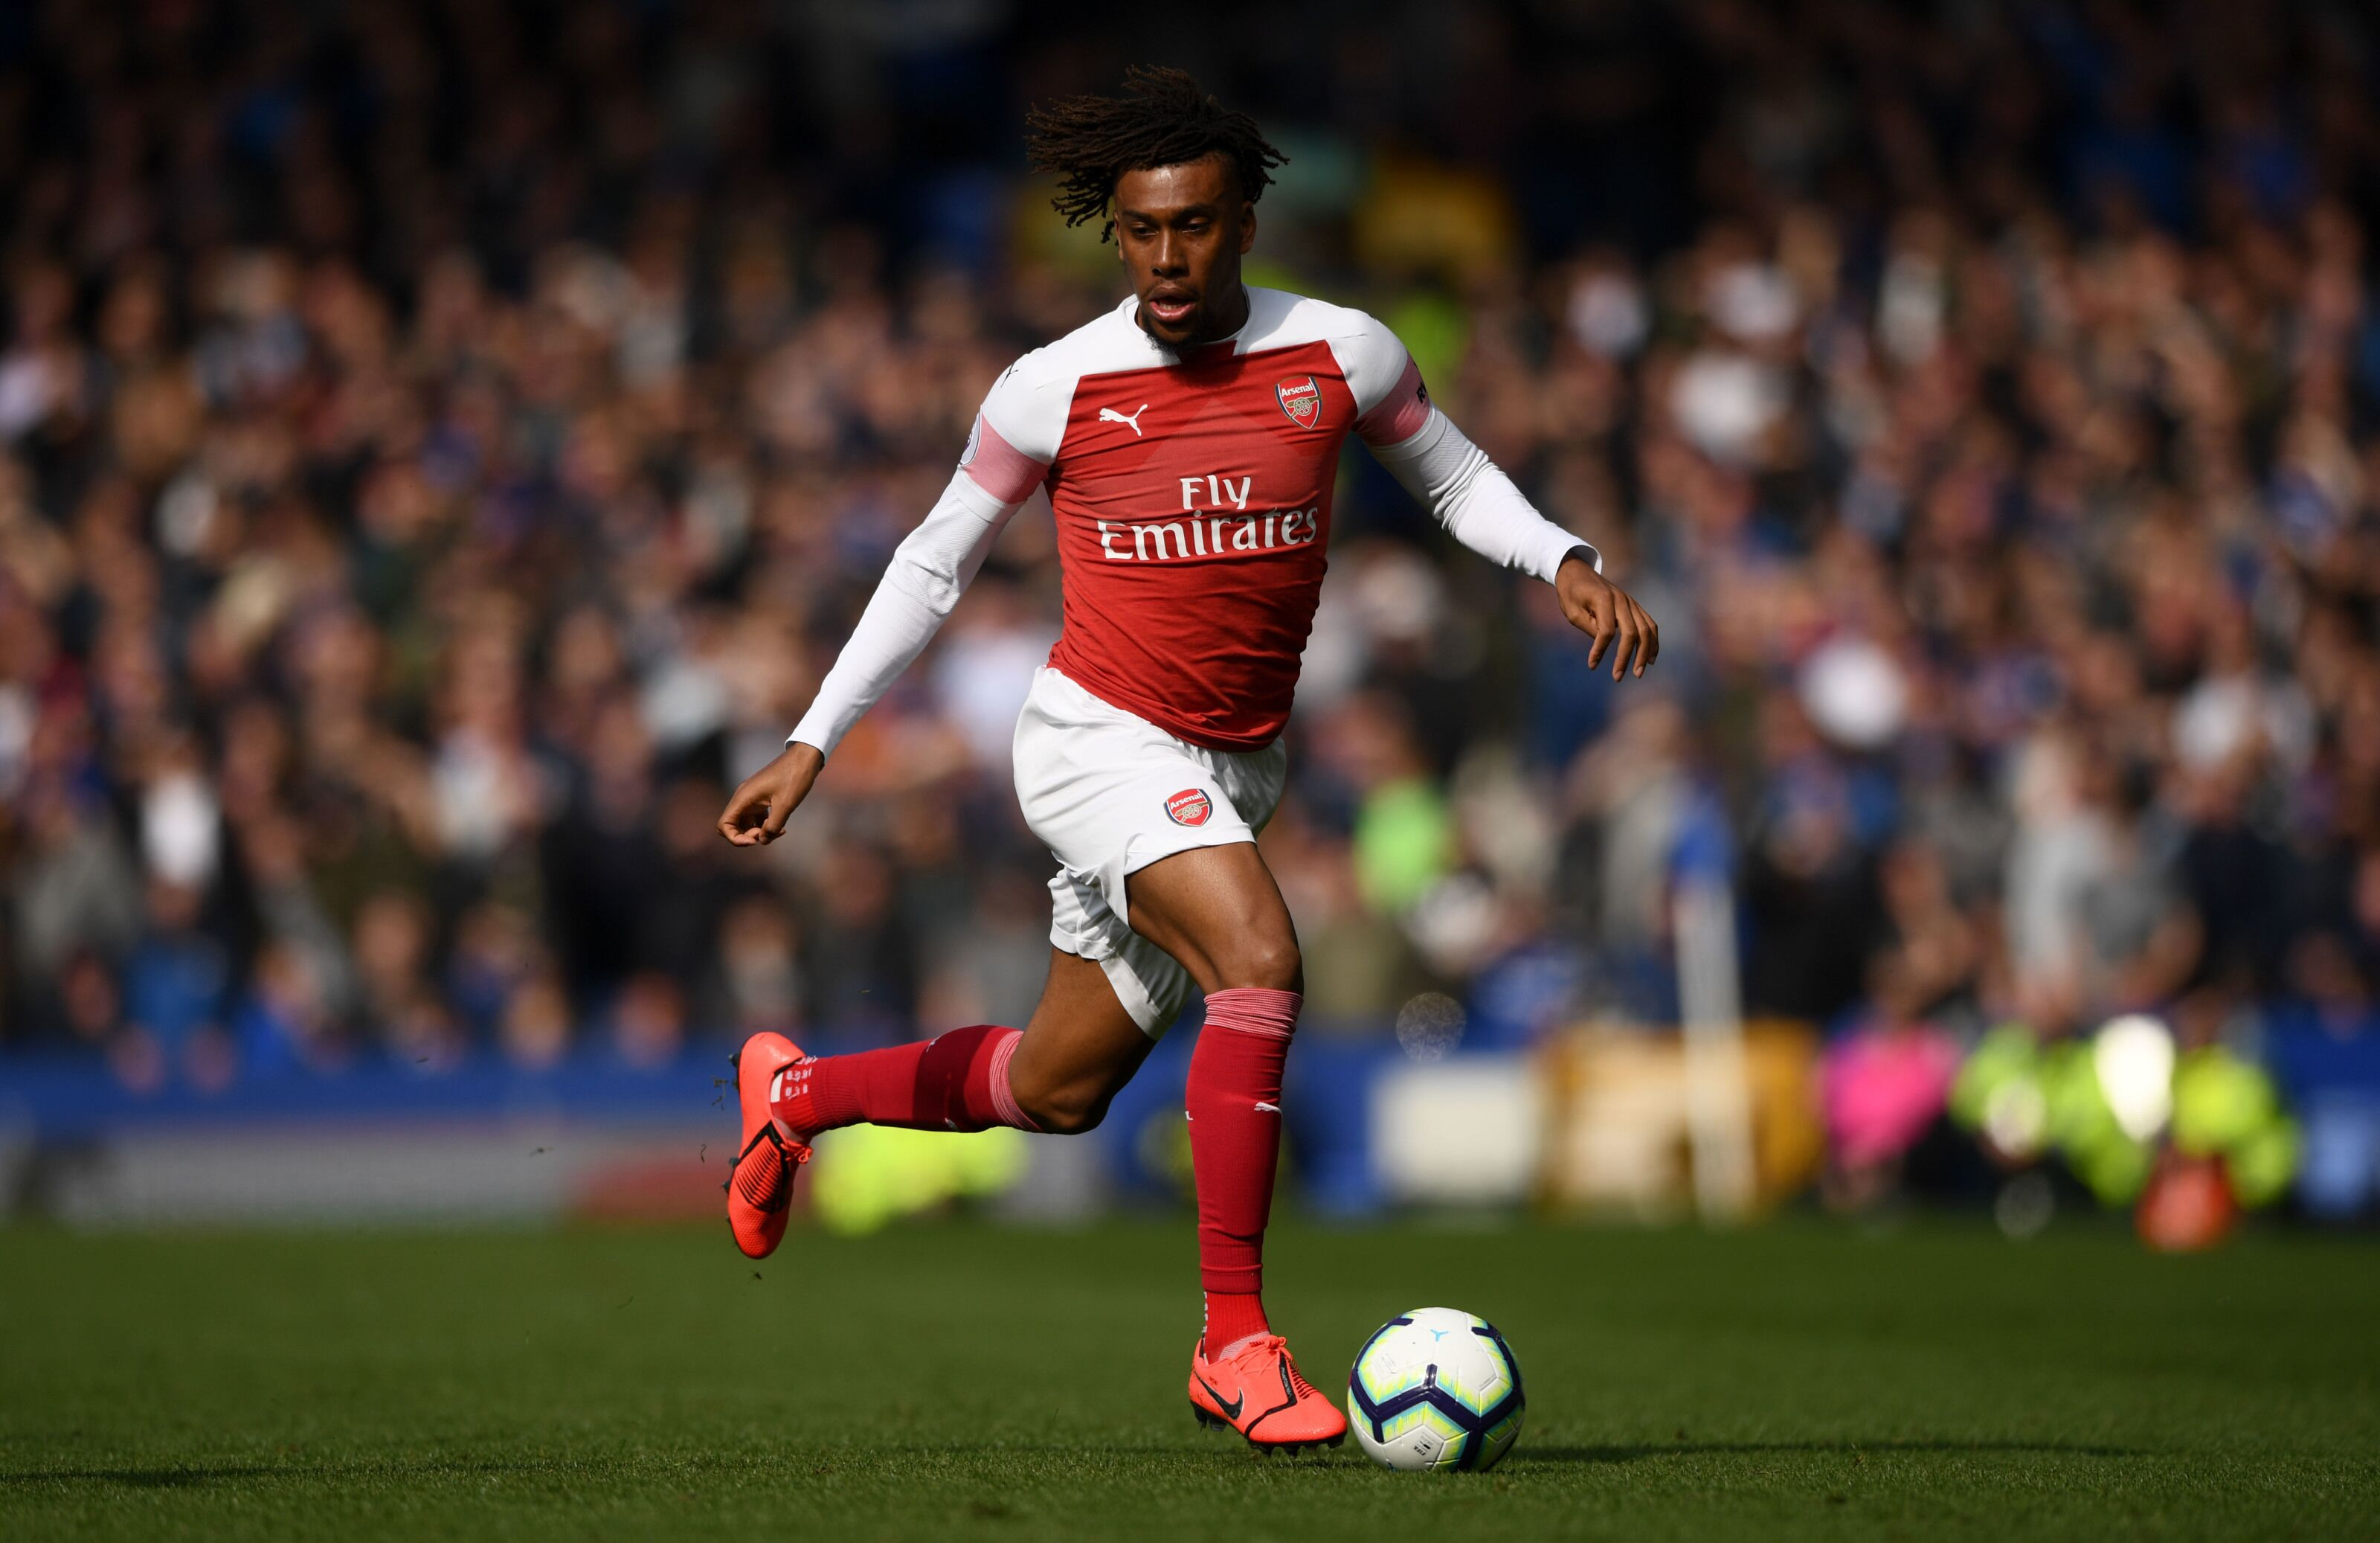 Arsenal: Alex Iwobi standing firm amidst rumors and… still trying